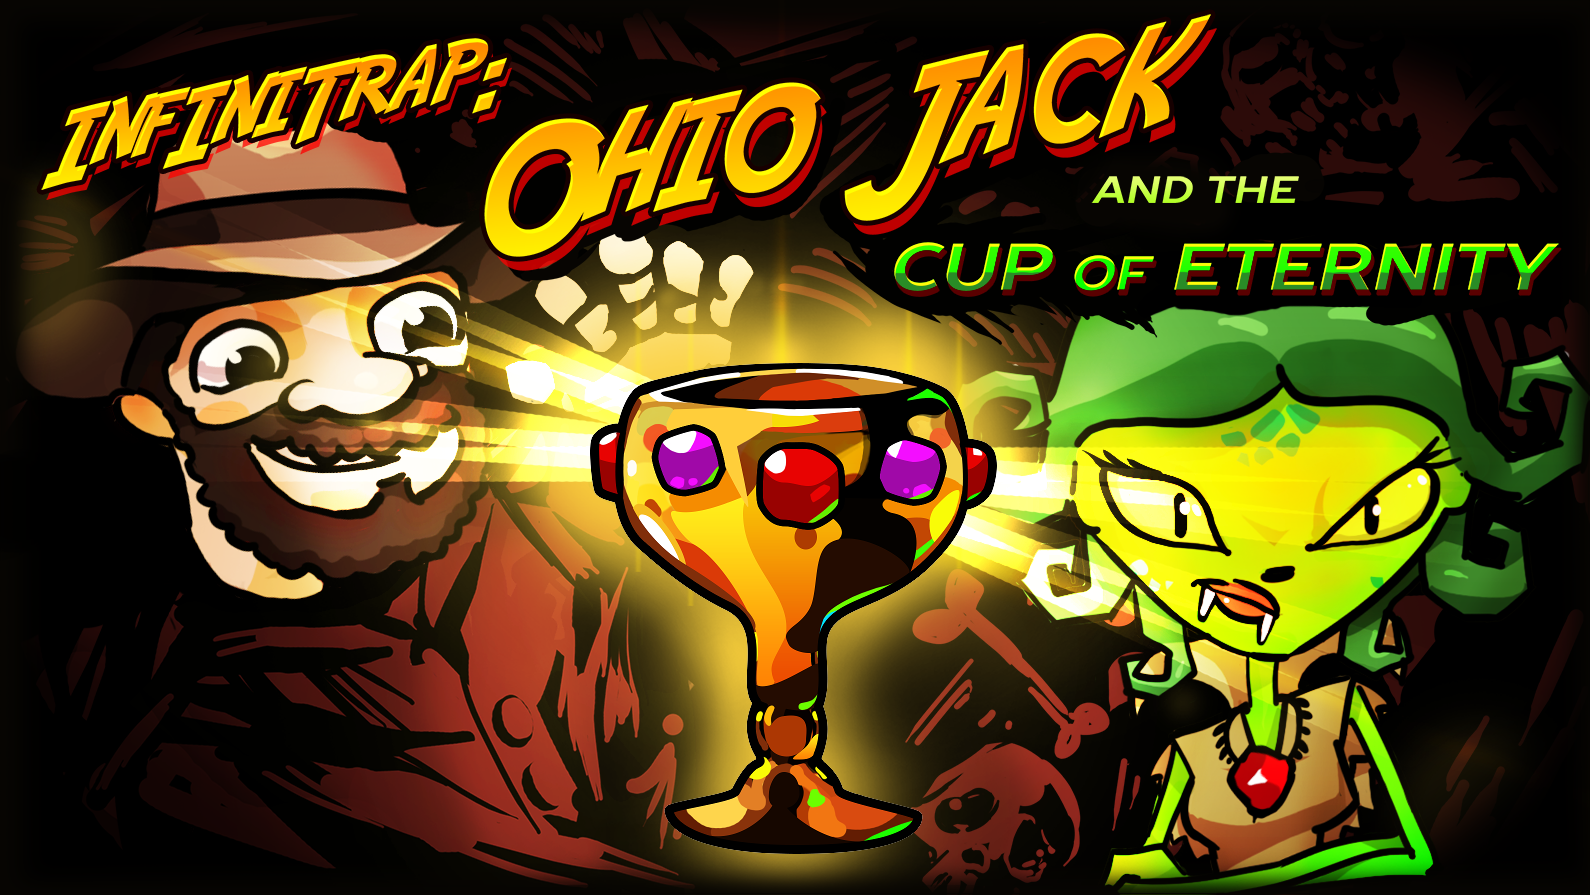 Ohio Jack and The Cup of Eternity [Download]